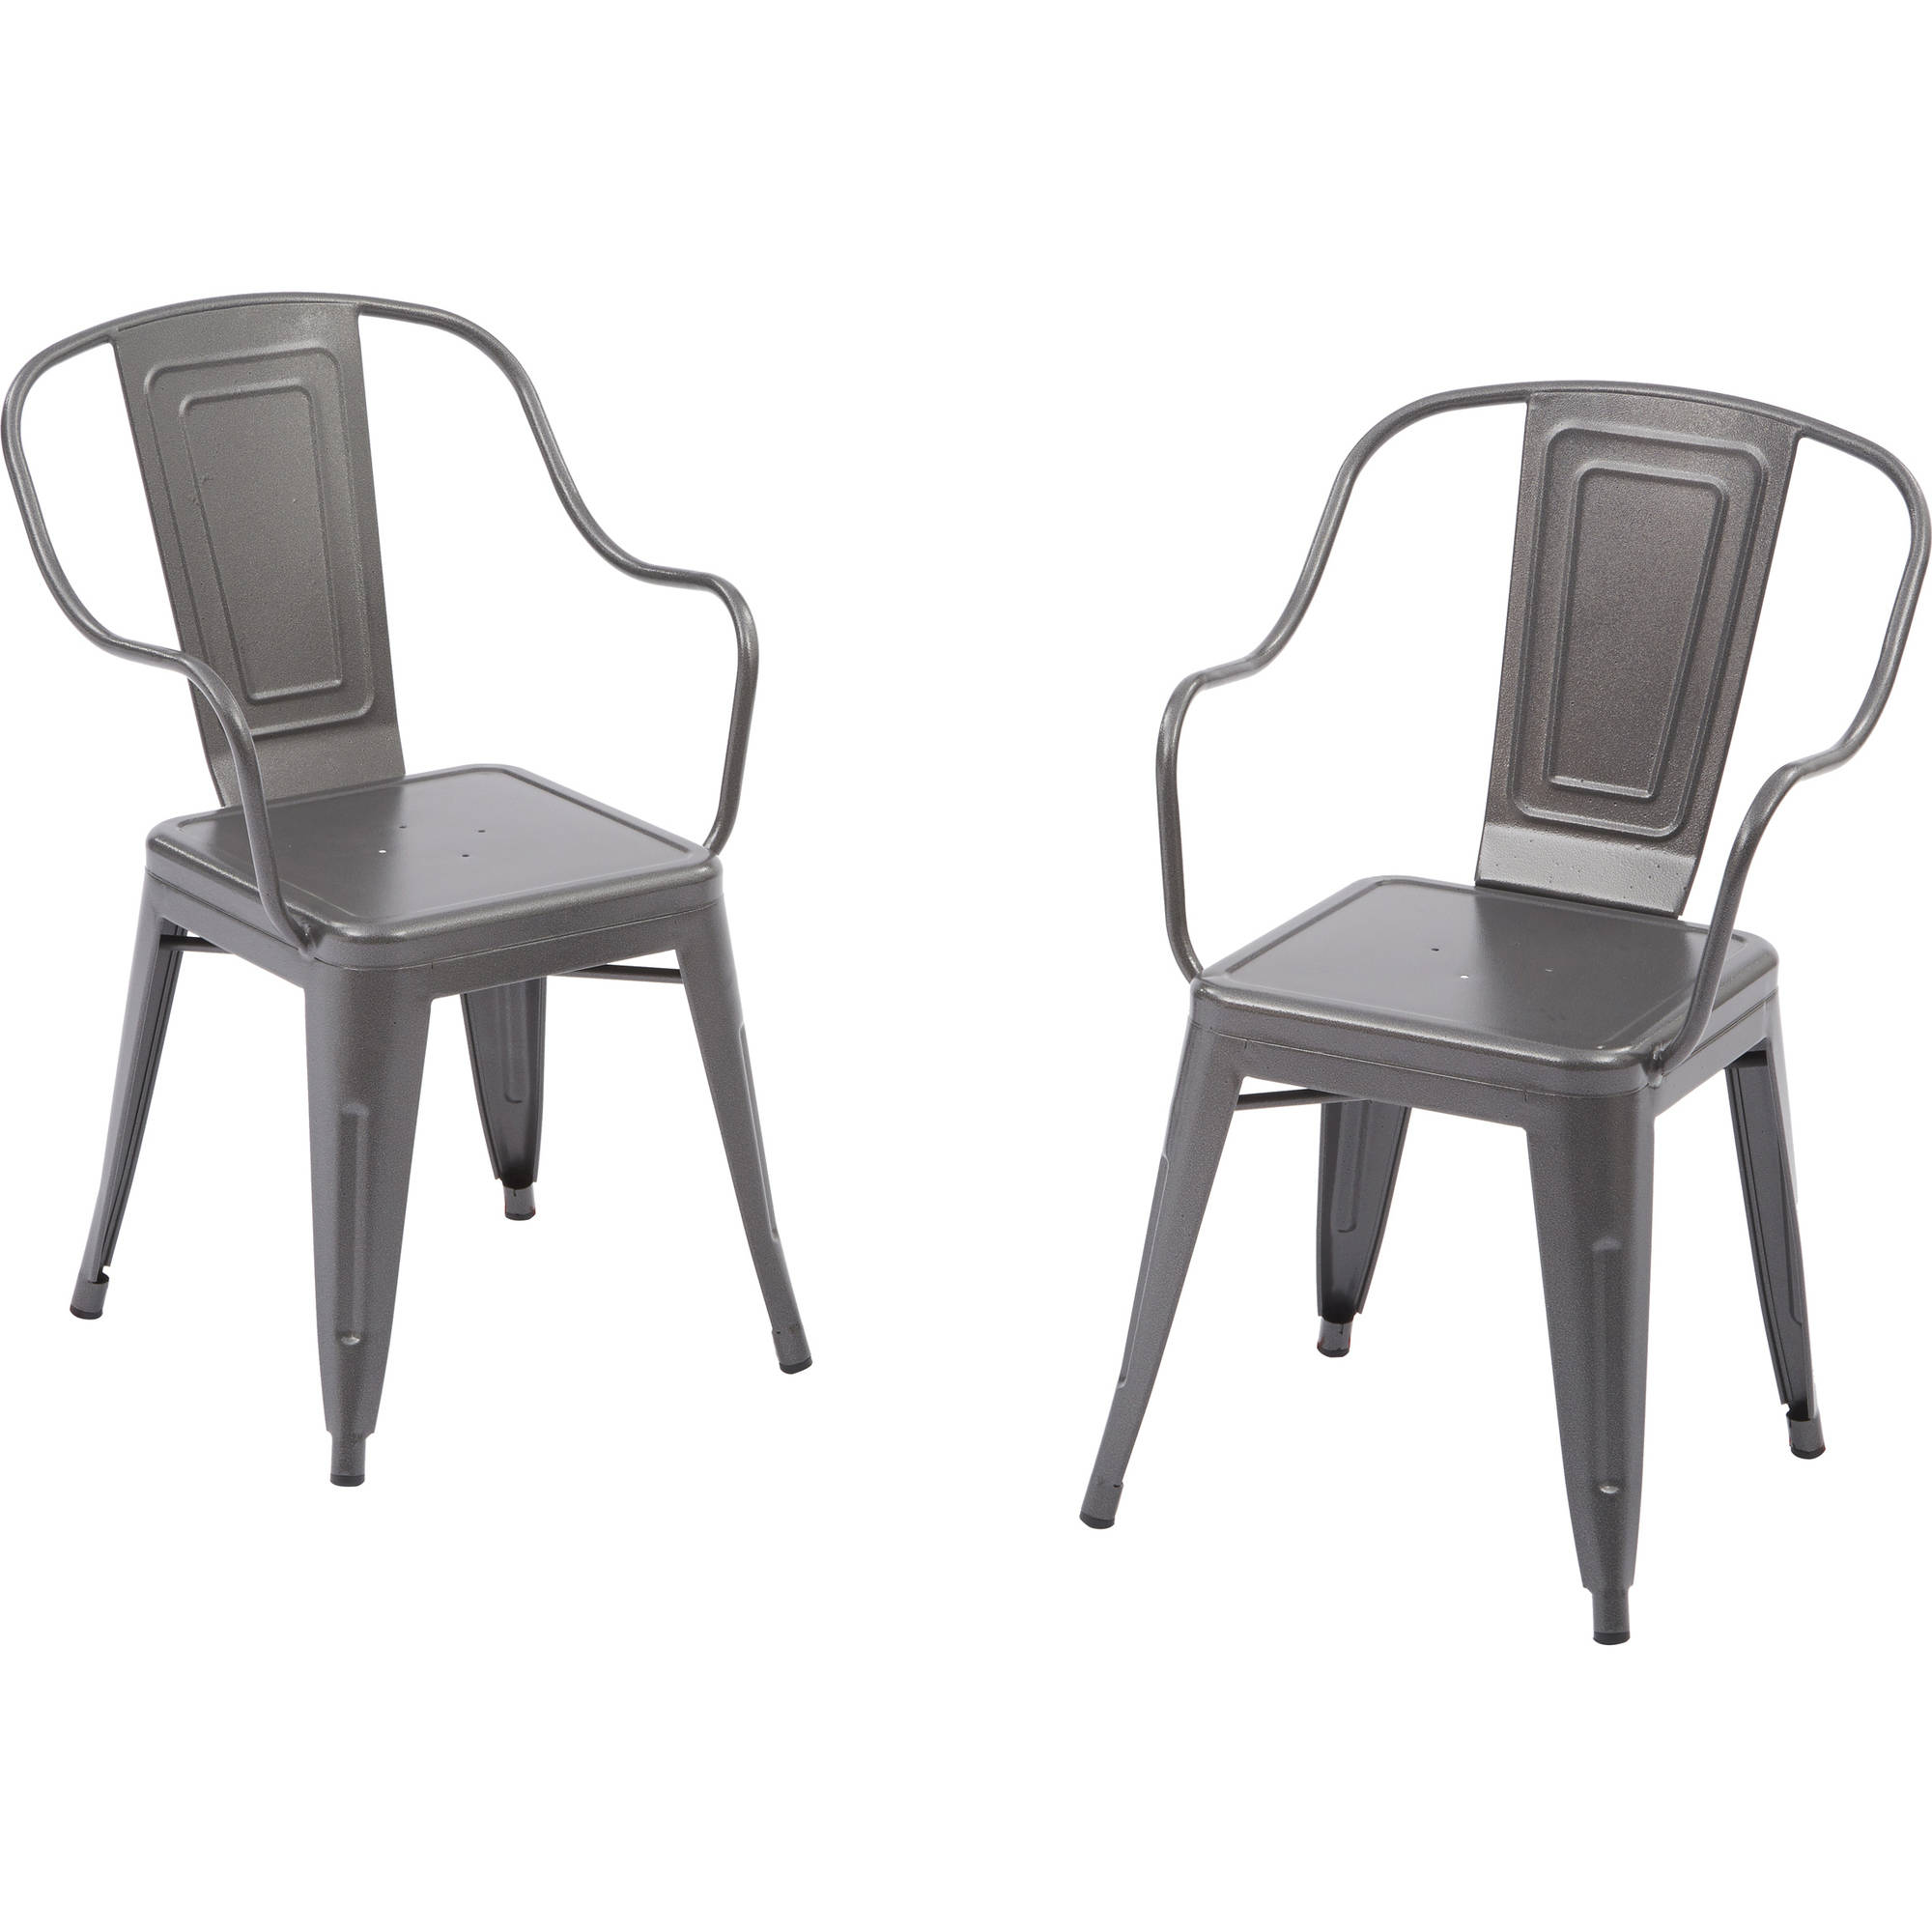 Better Homes and Gardens Camrose Farmhouse Industrial Chairs Gray